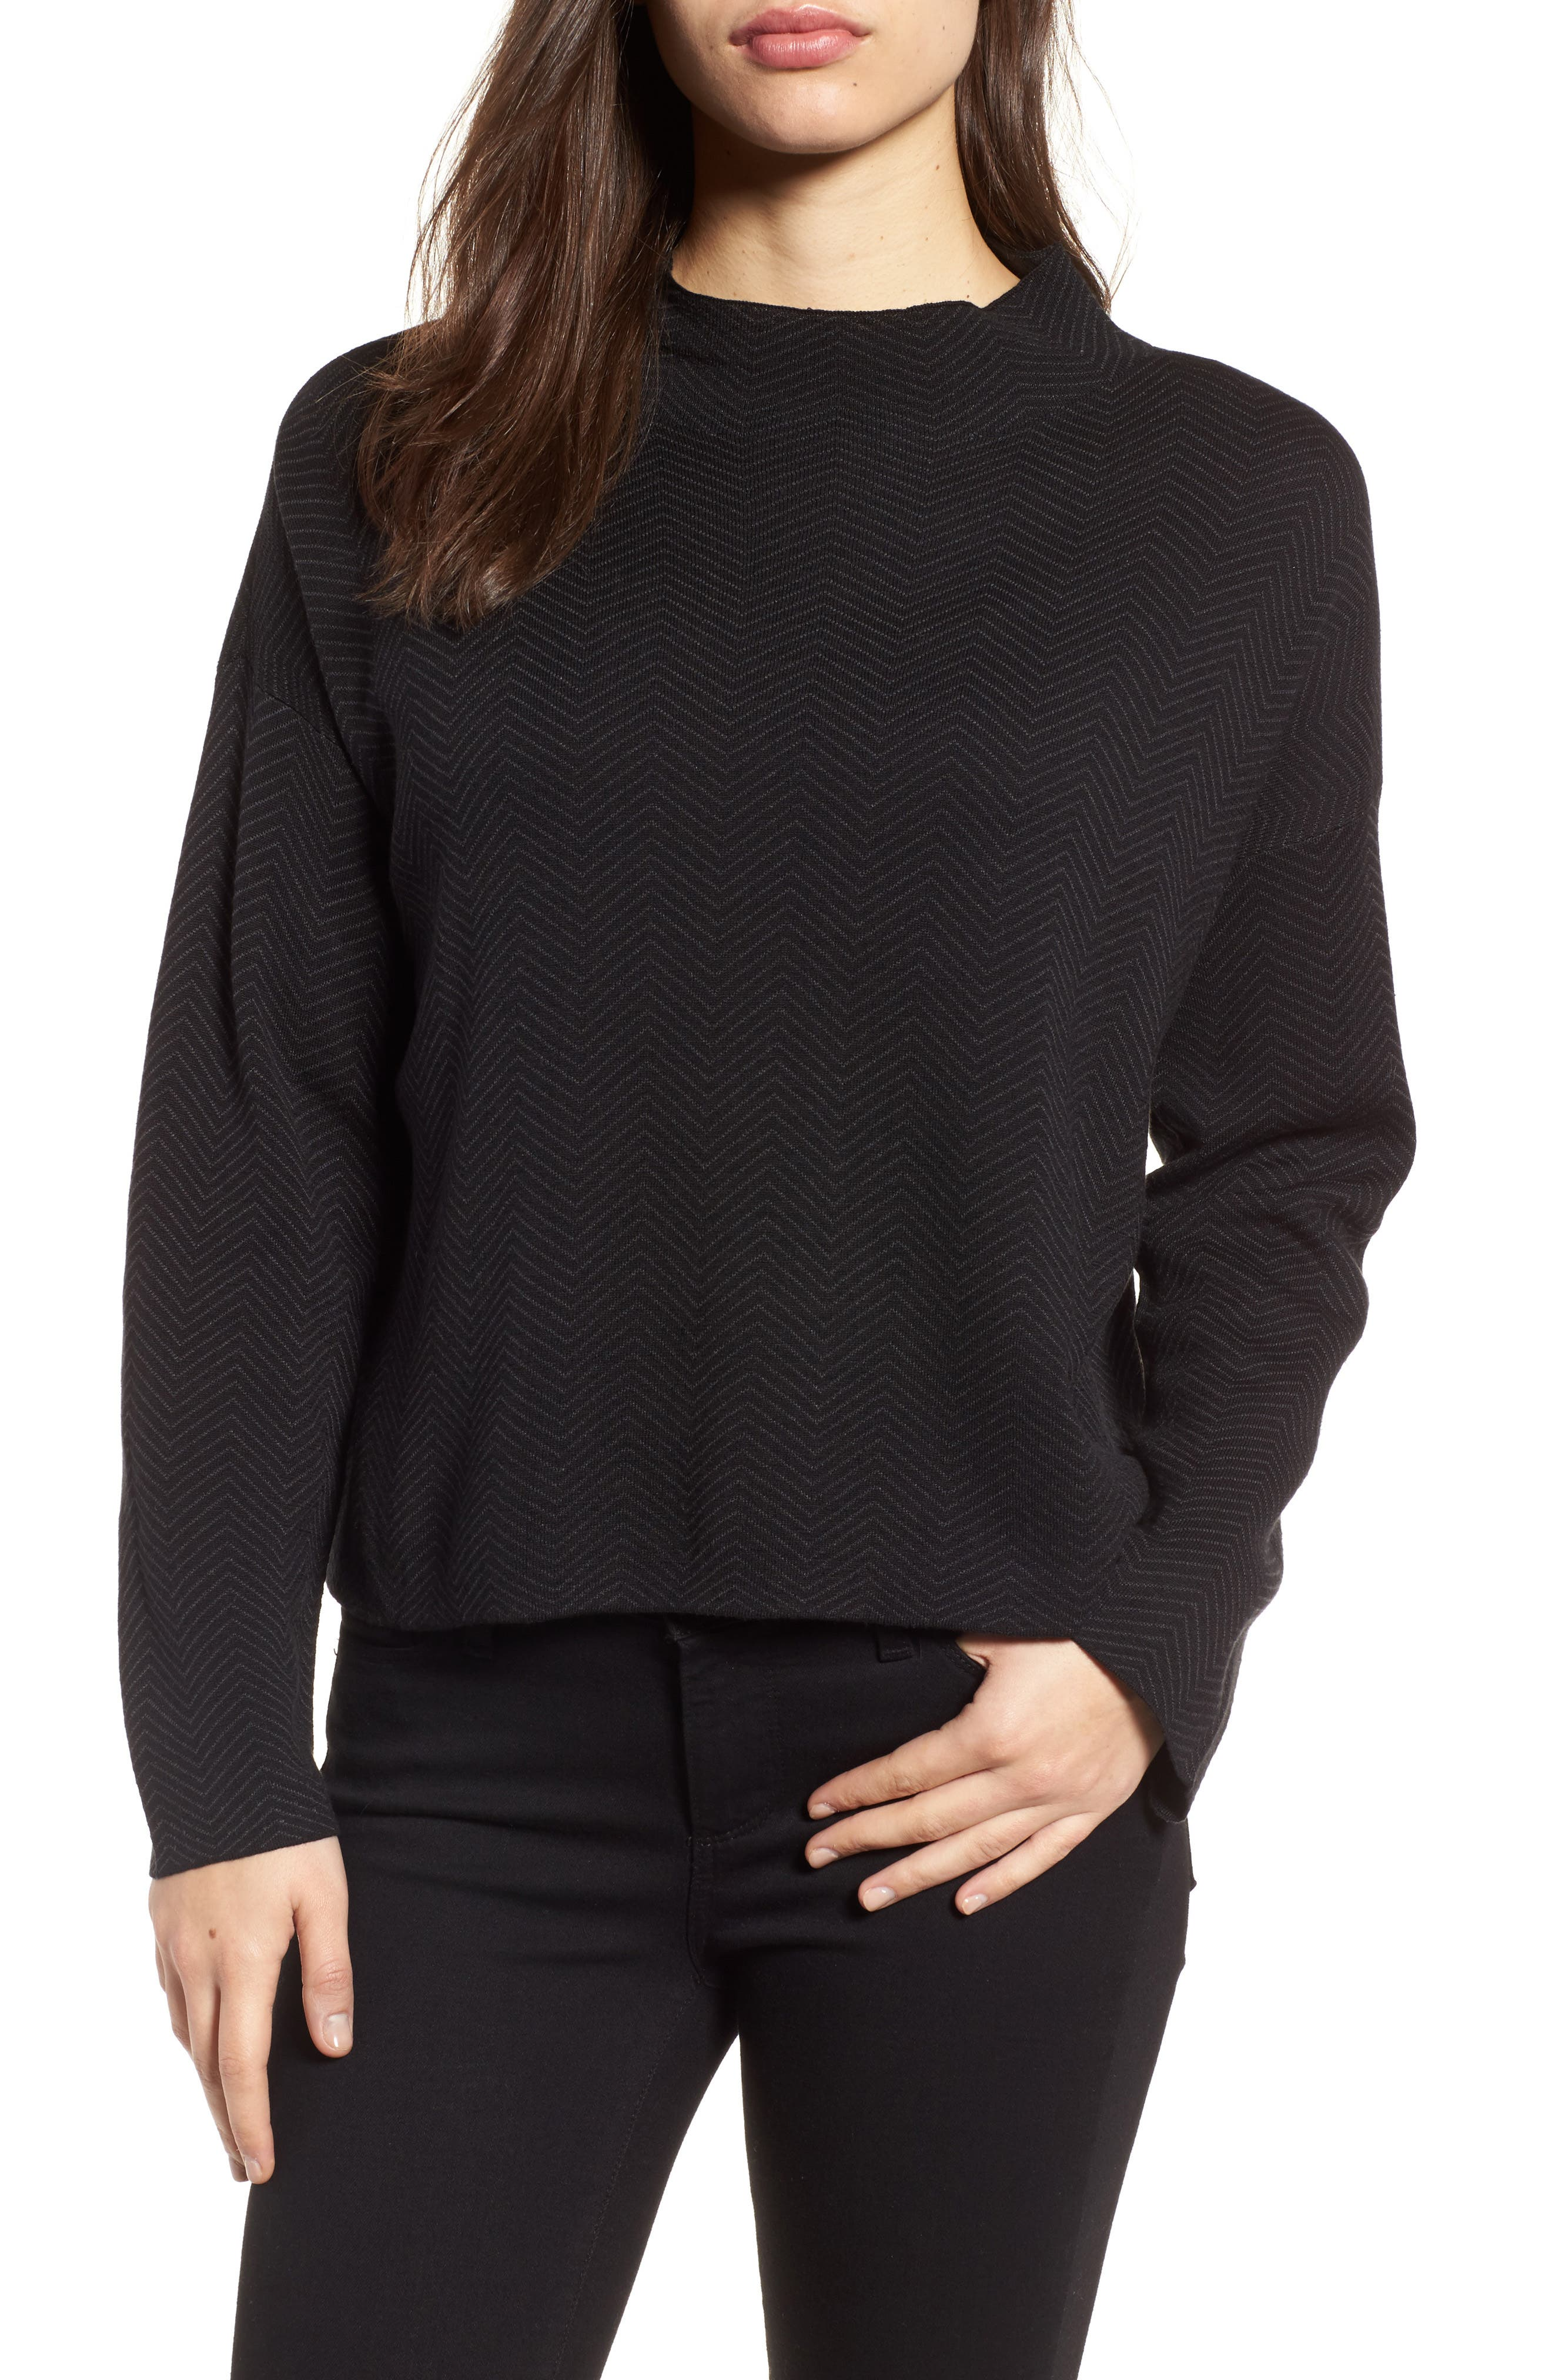 Silk & Organic Cotton Jacquard Top,                             Main thumbnail 1, color,                             Black Charcoal